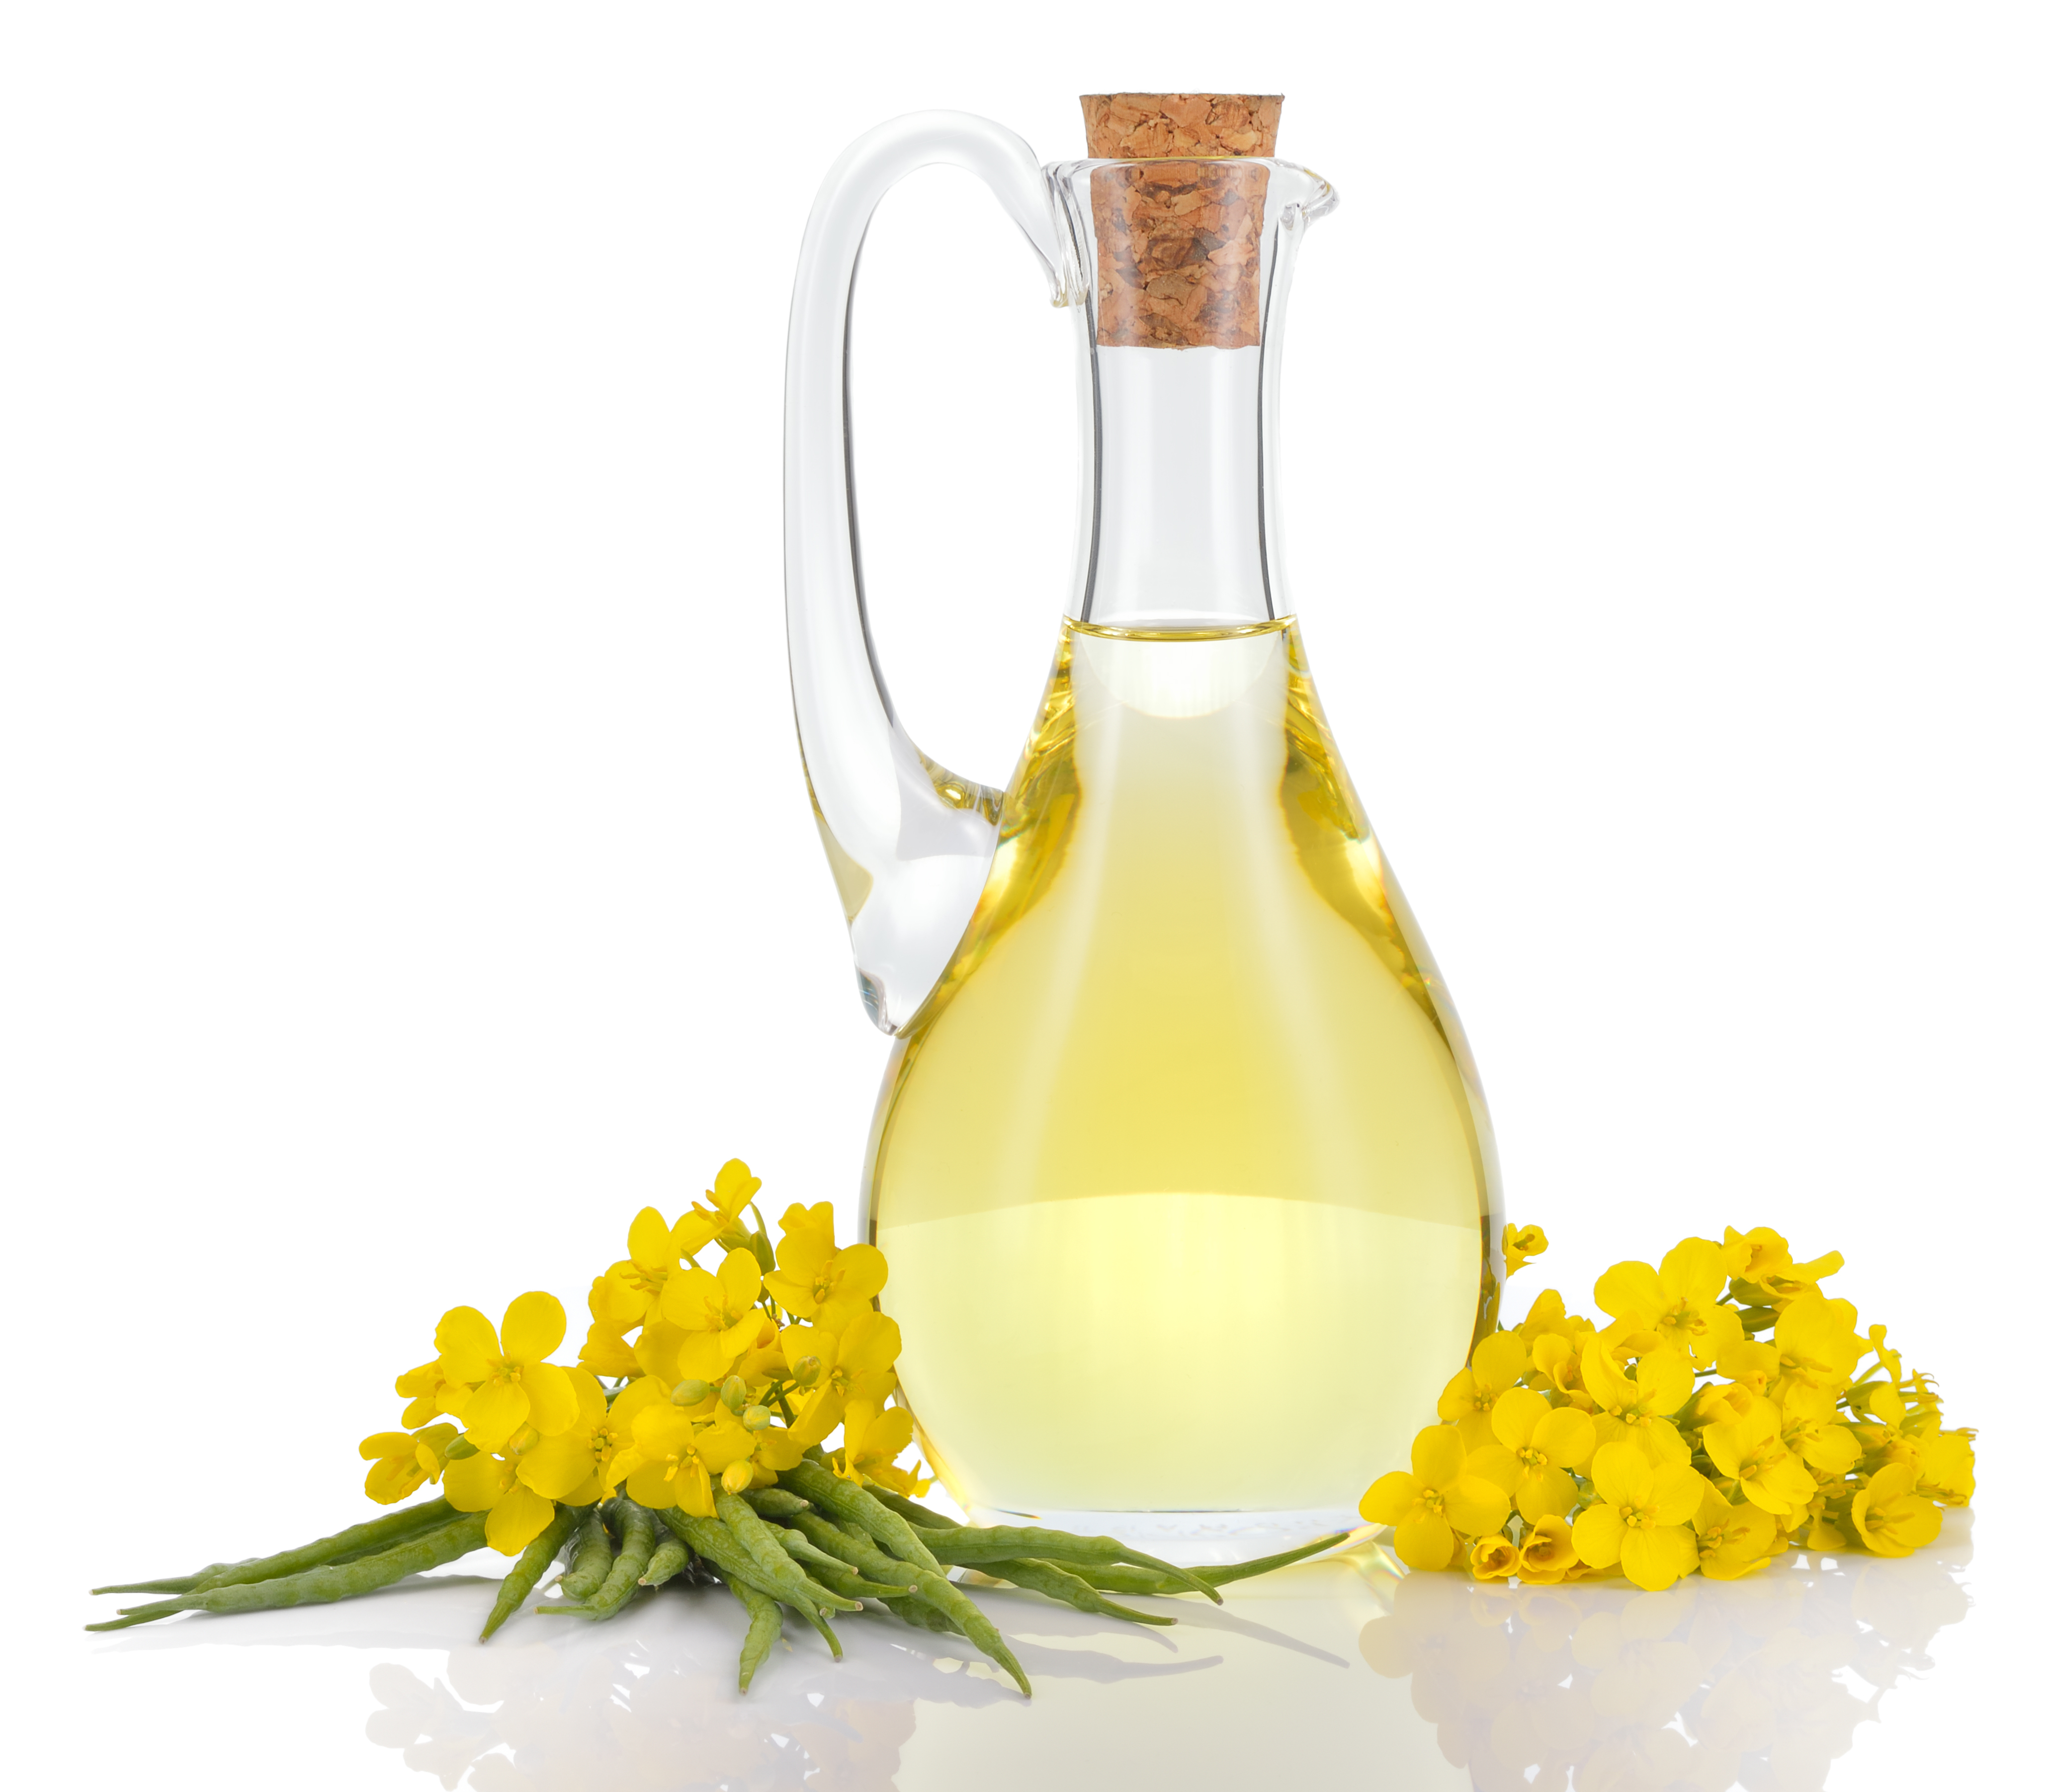 Oils, Margarines and Shortenings